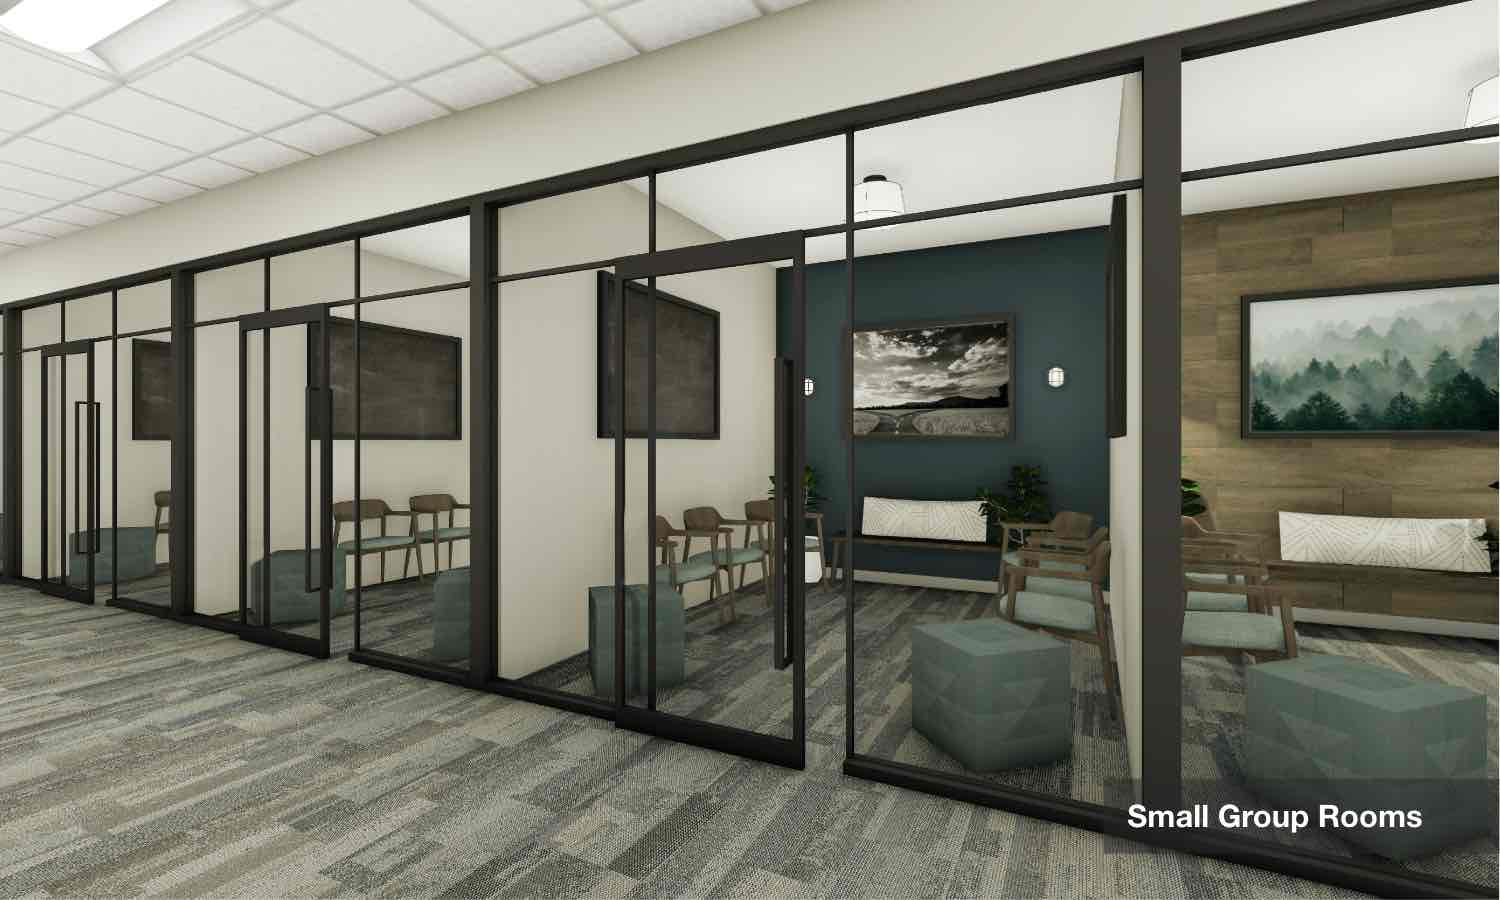 Small Group Rooms